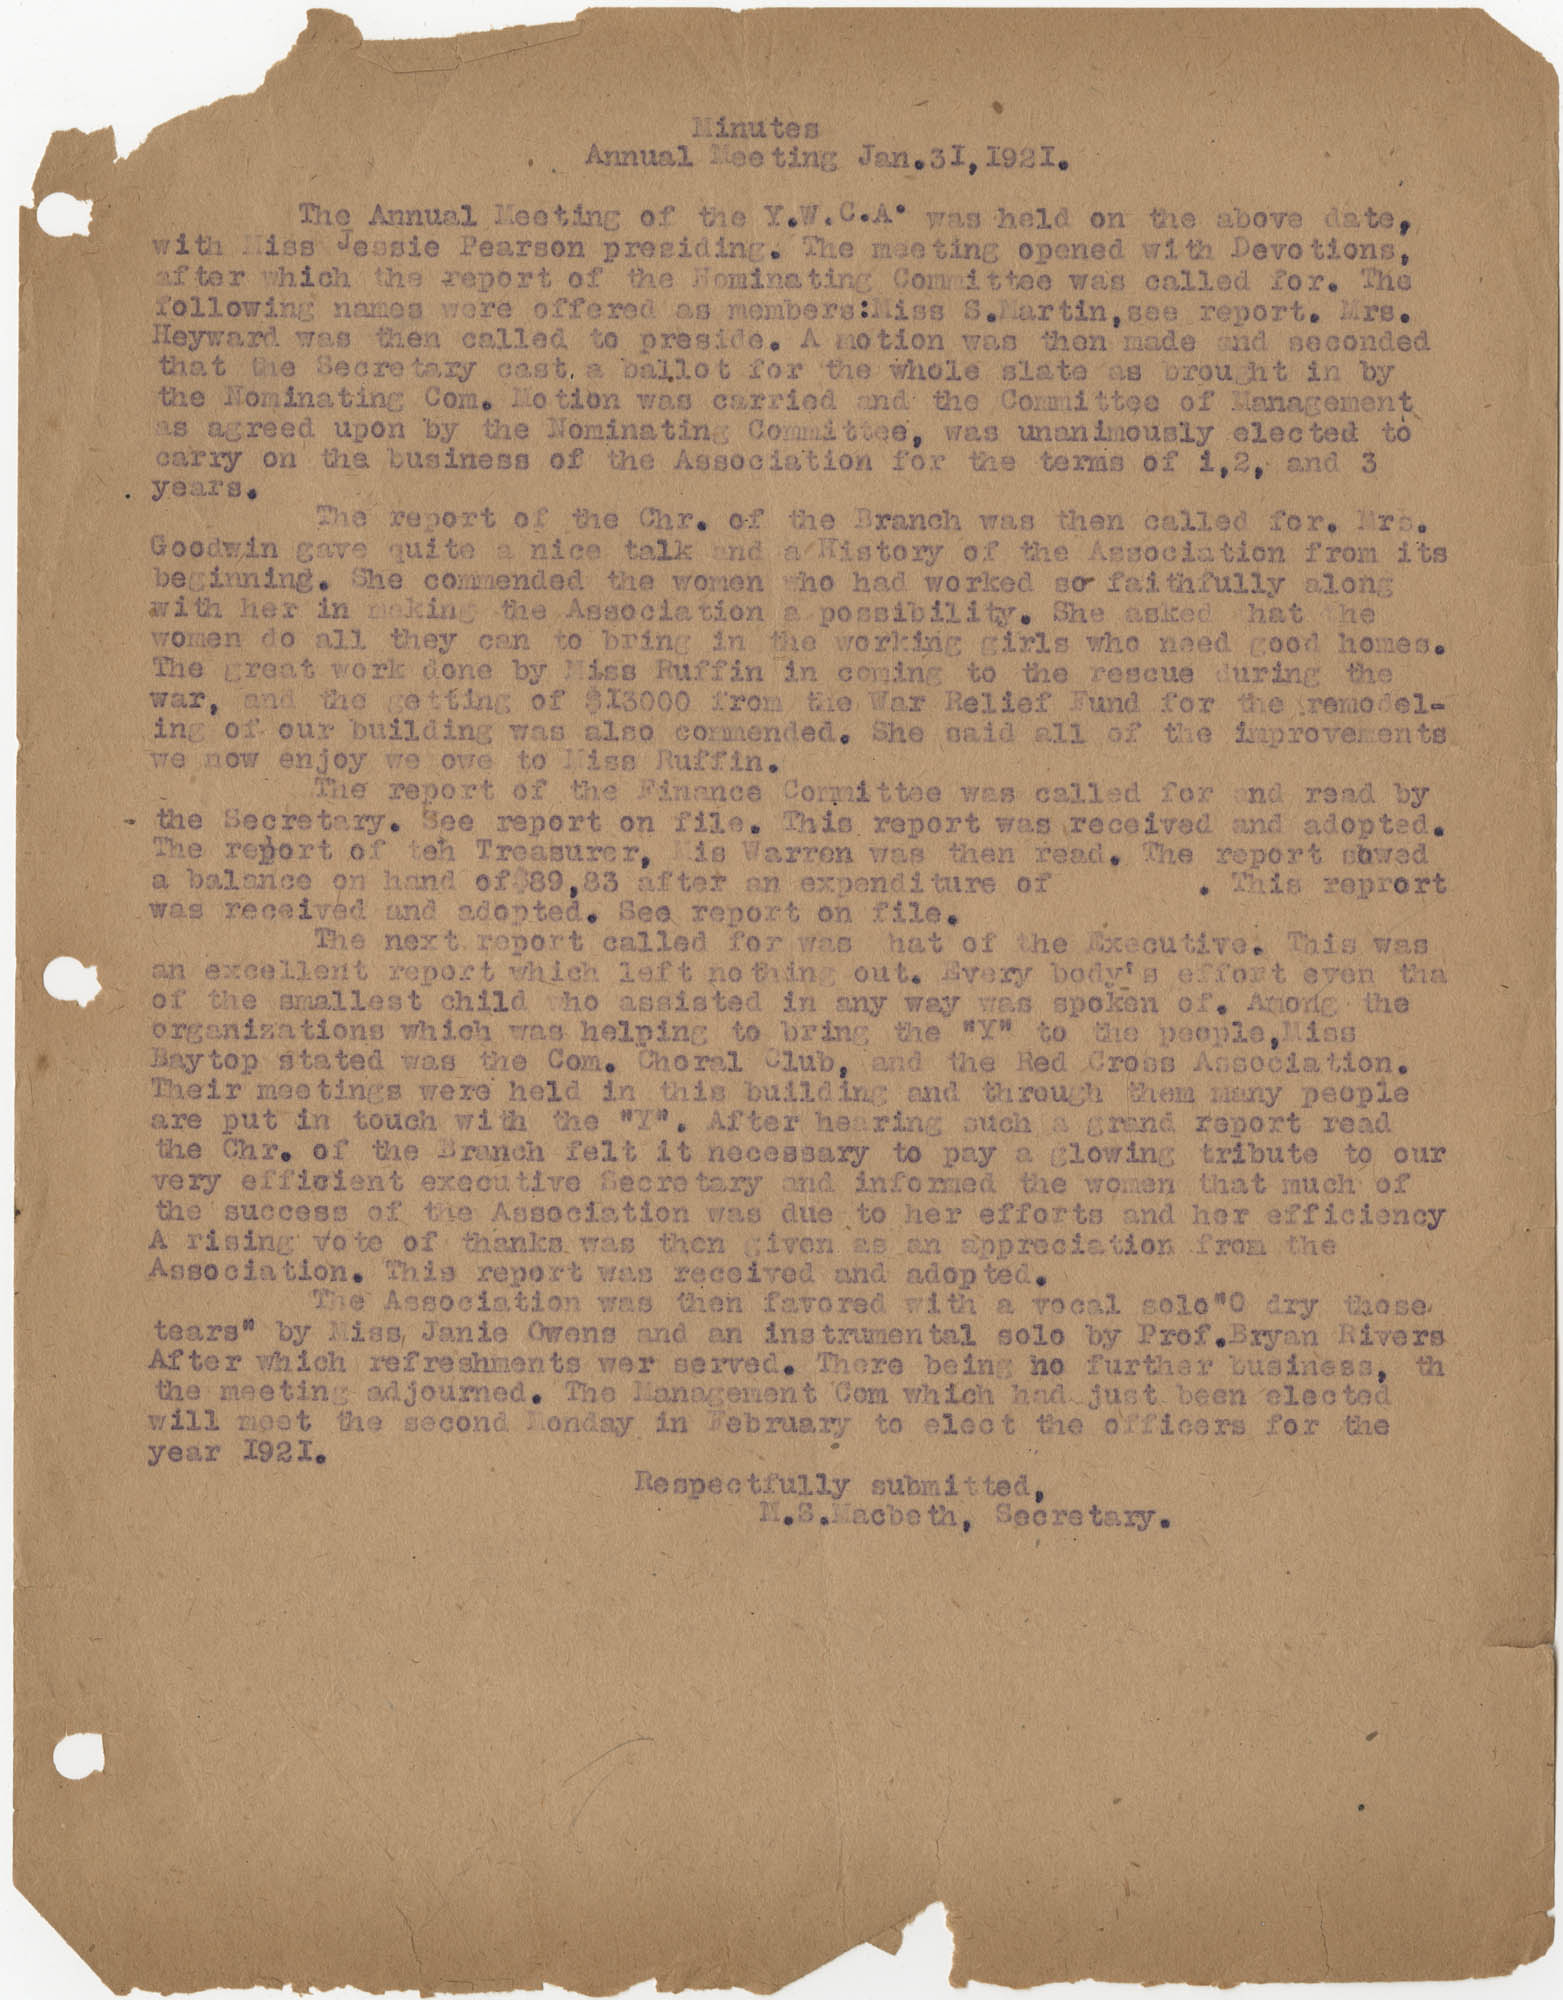 Minutes, Coming Street Y.W.C.A., January 31, 1921